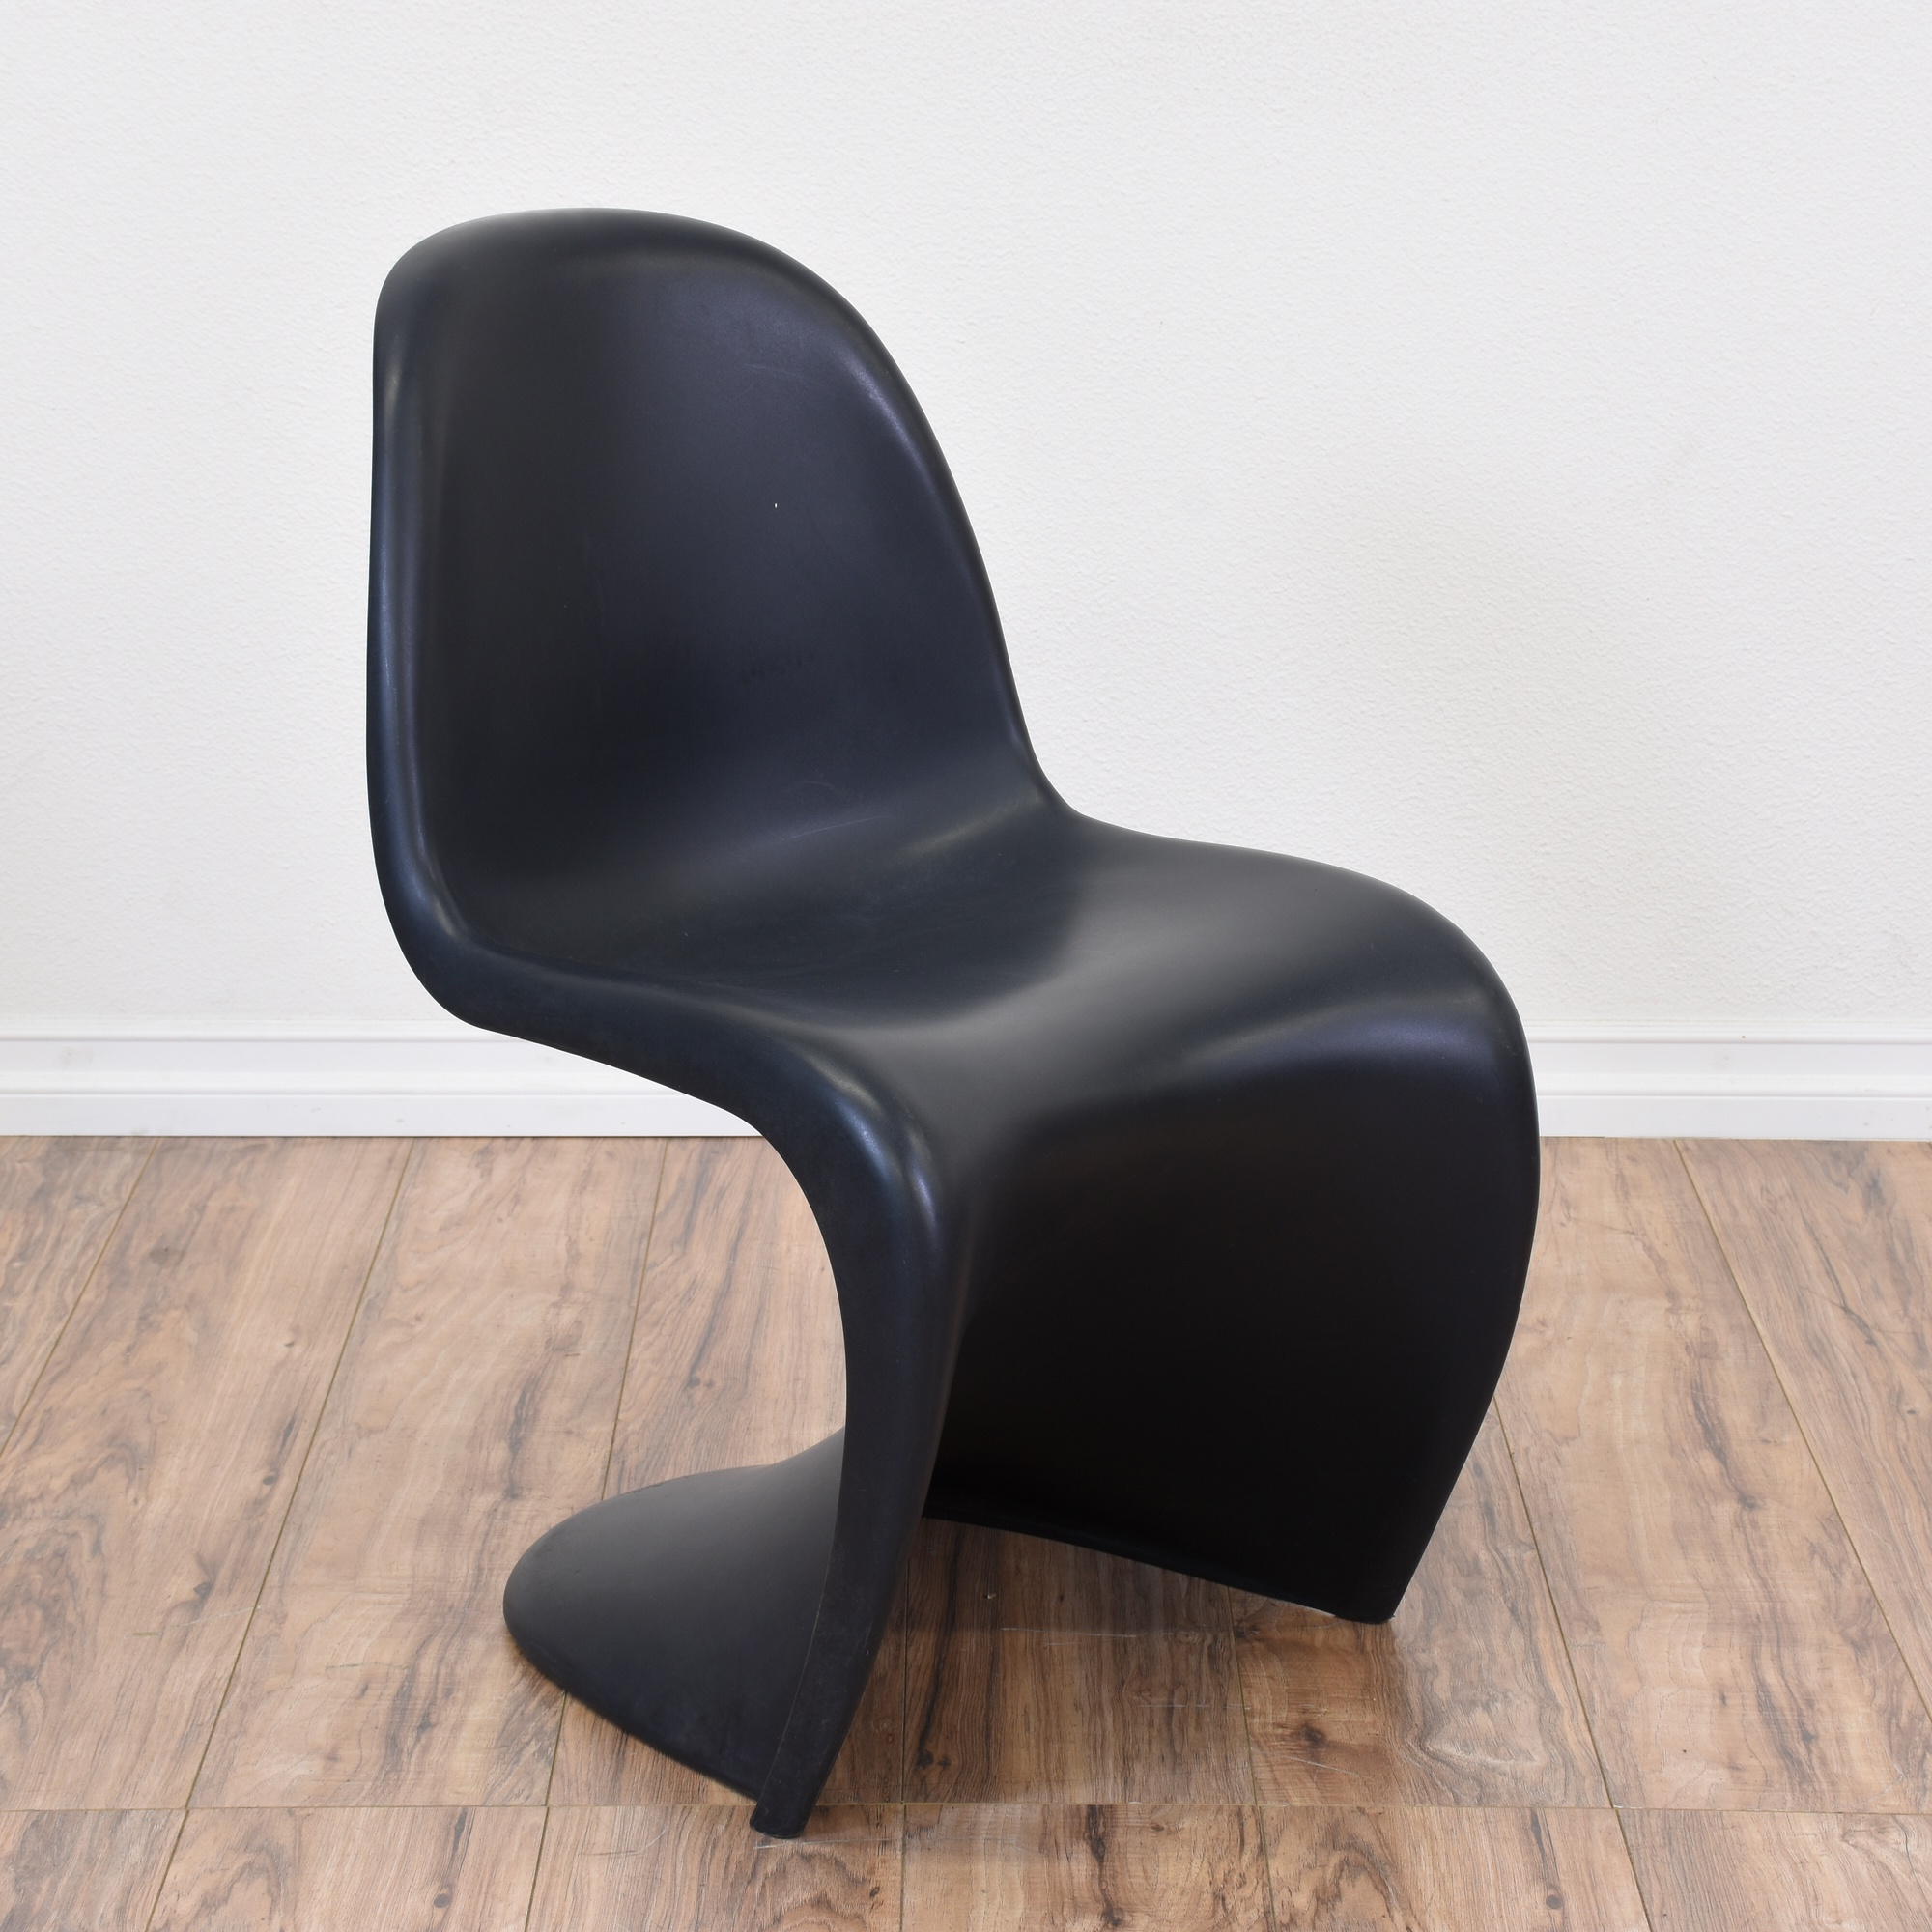 vitra panton chair in black loveseat vintage furniture san diego los angeles. Black Bedroom Furniture Sets. Home Design Ideas